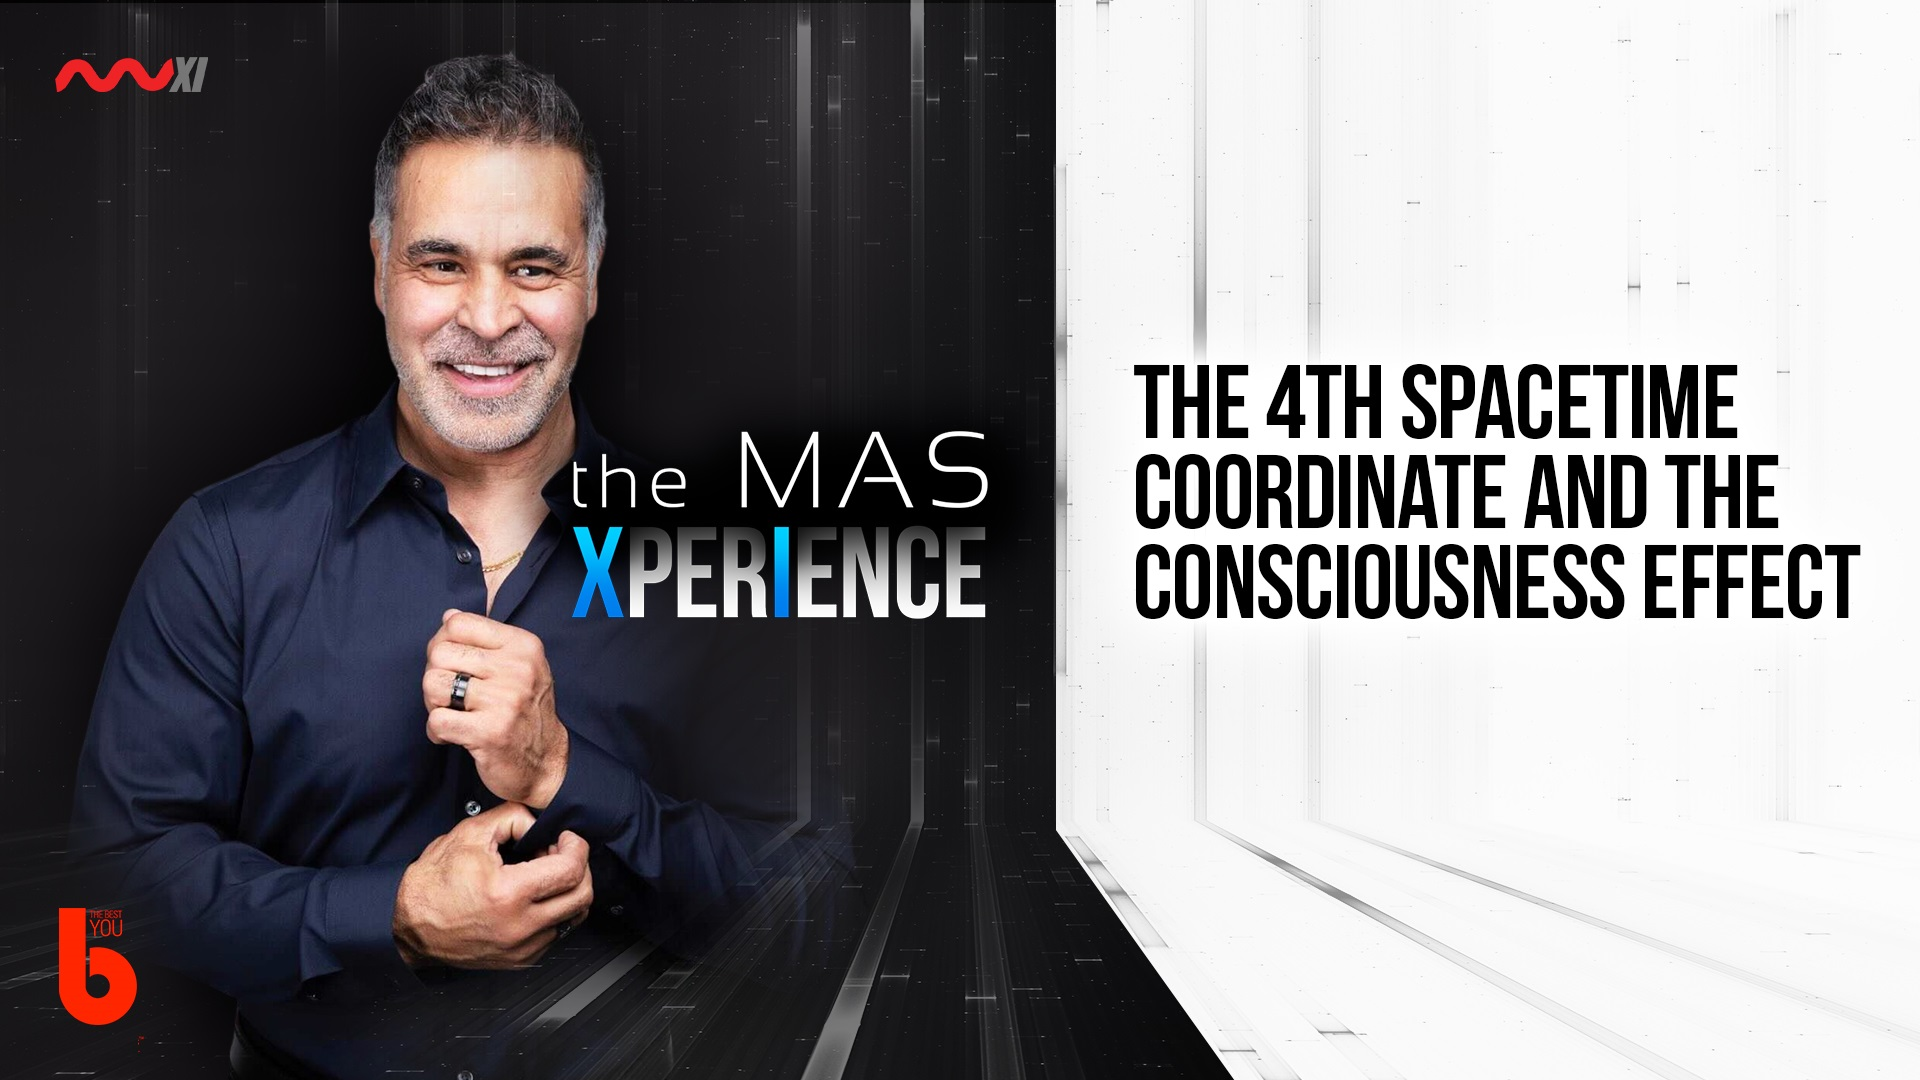 The 4th Spacetime Coordinate and the Consciousness Effect